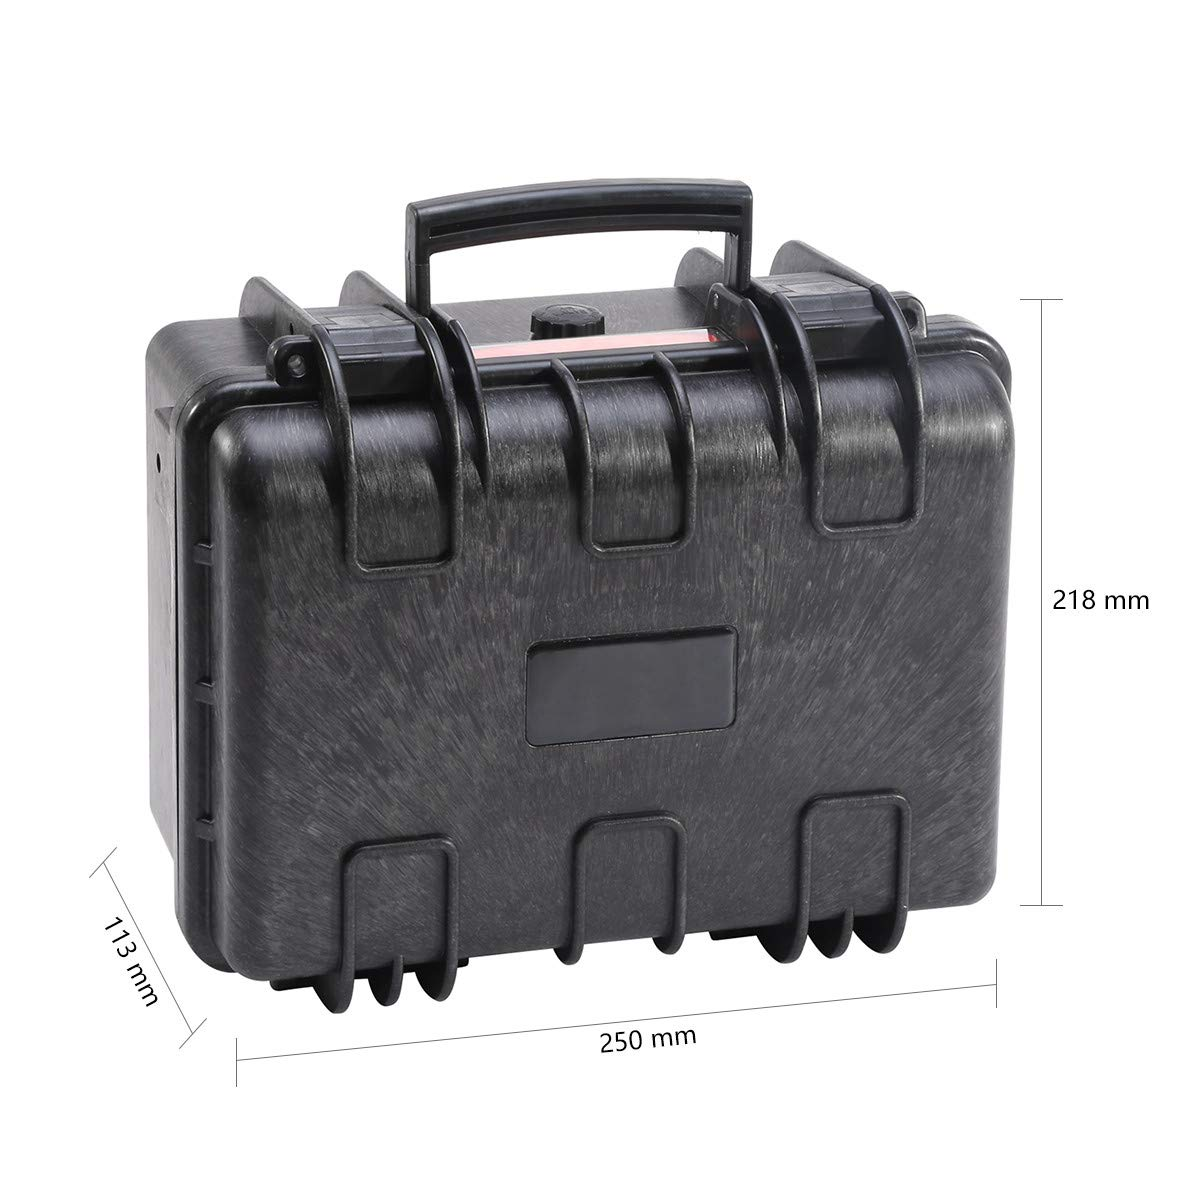 Merdia Pistol Cases Hard Cases Handgun Case Protective Waterproof Revolvers Protective Case with Pre-Cut Foam Light Weight Easy Carrying-External Dimension-9.8*8.6*4.4